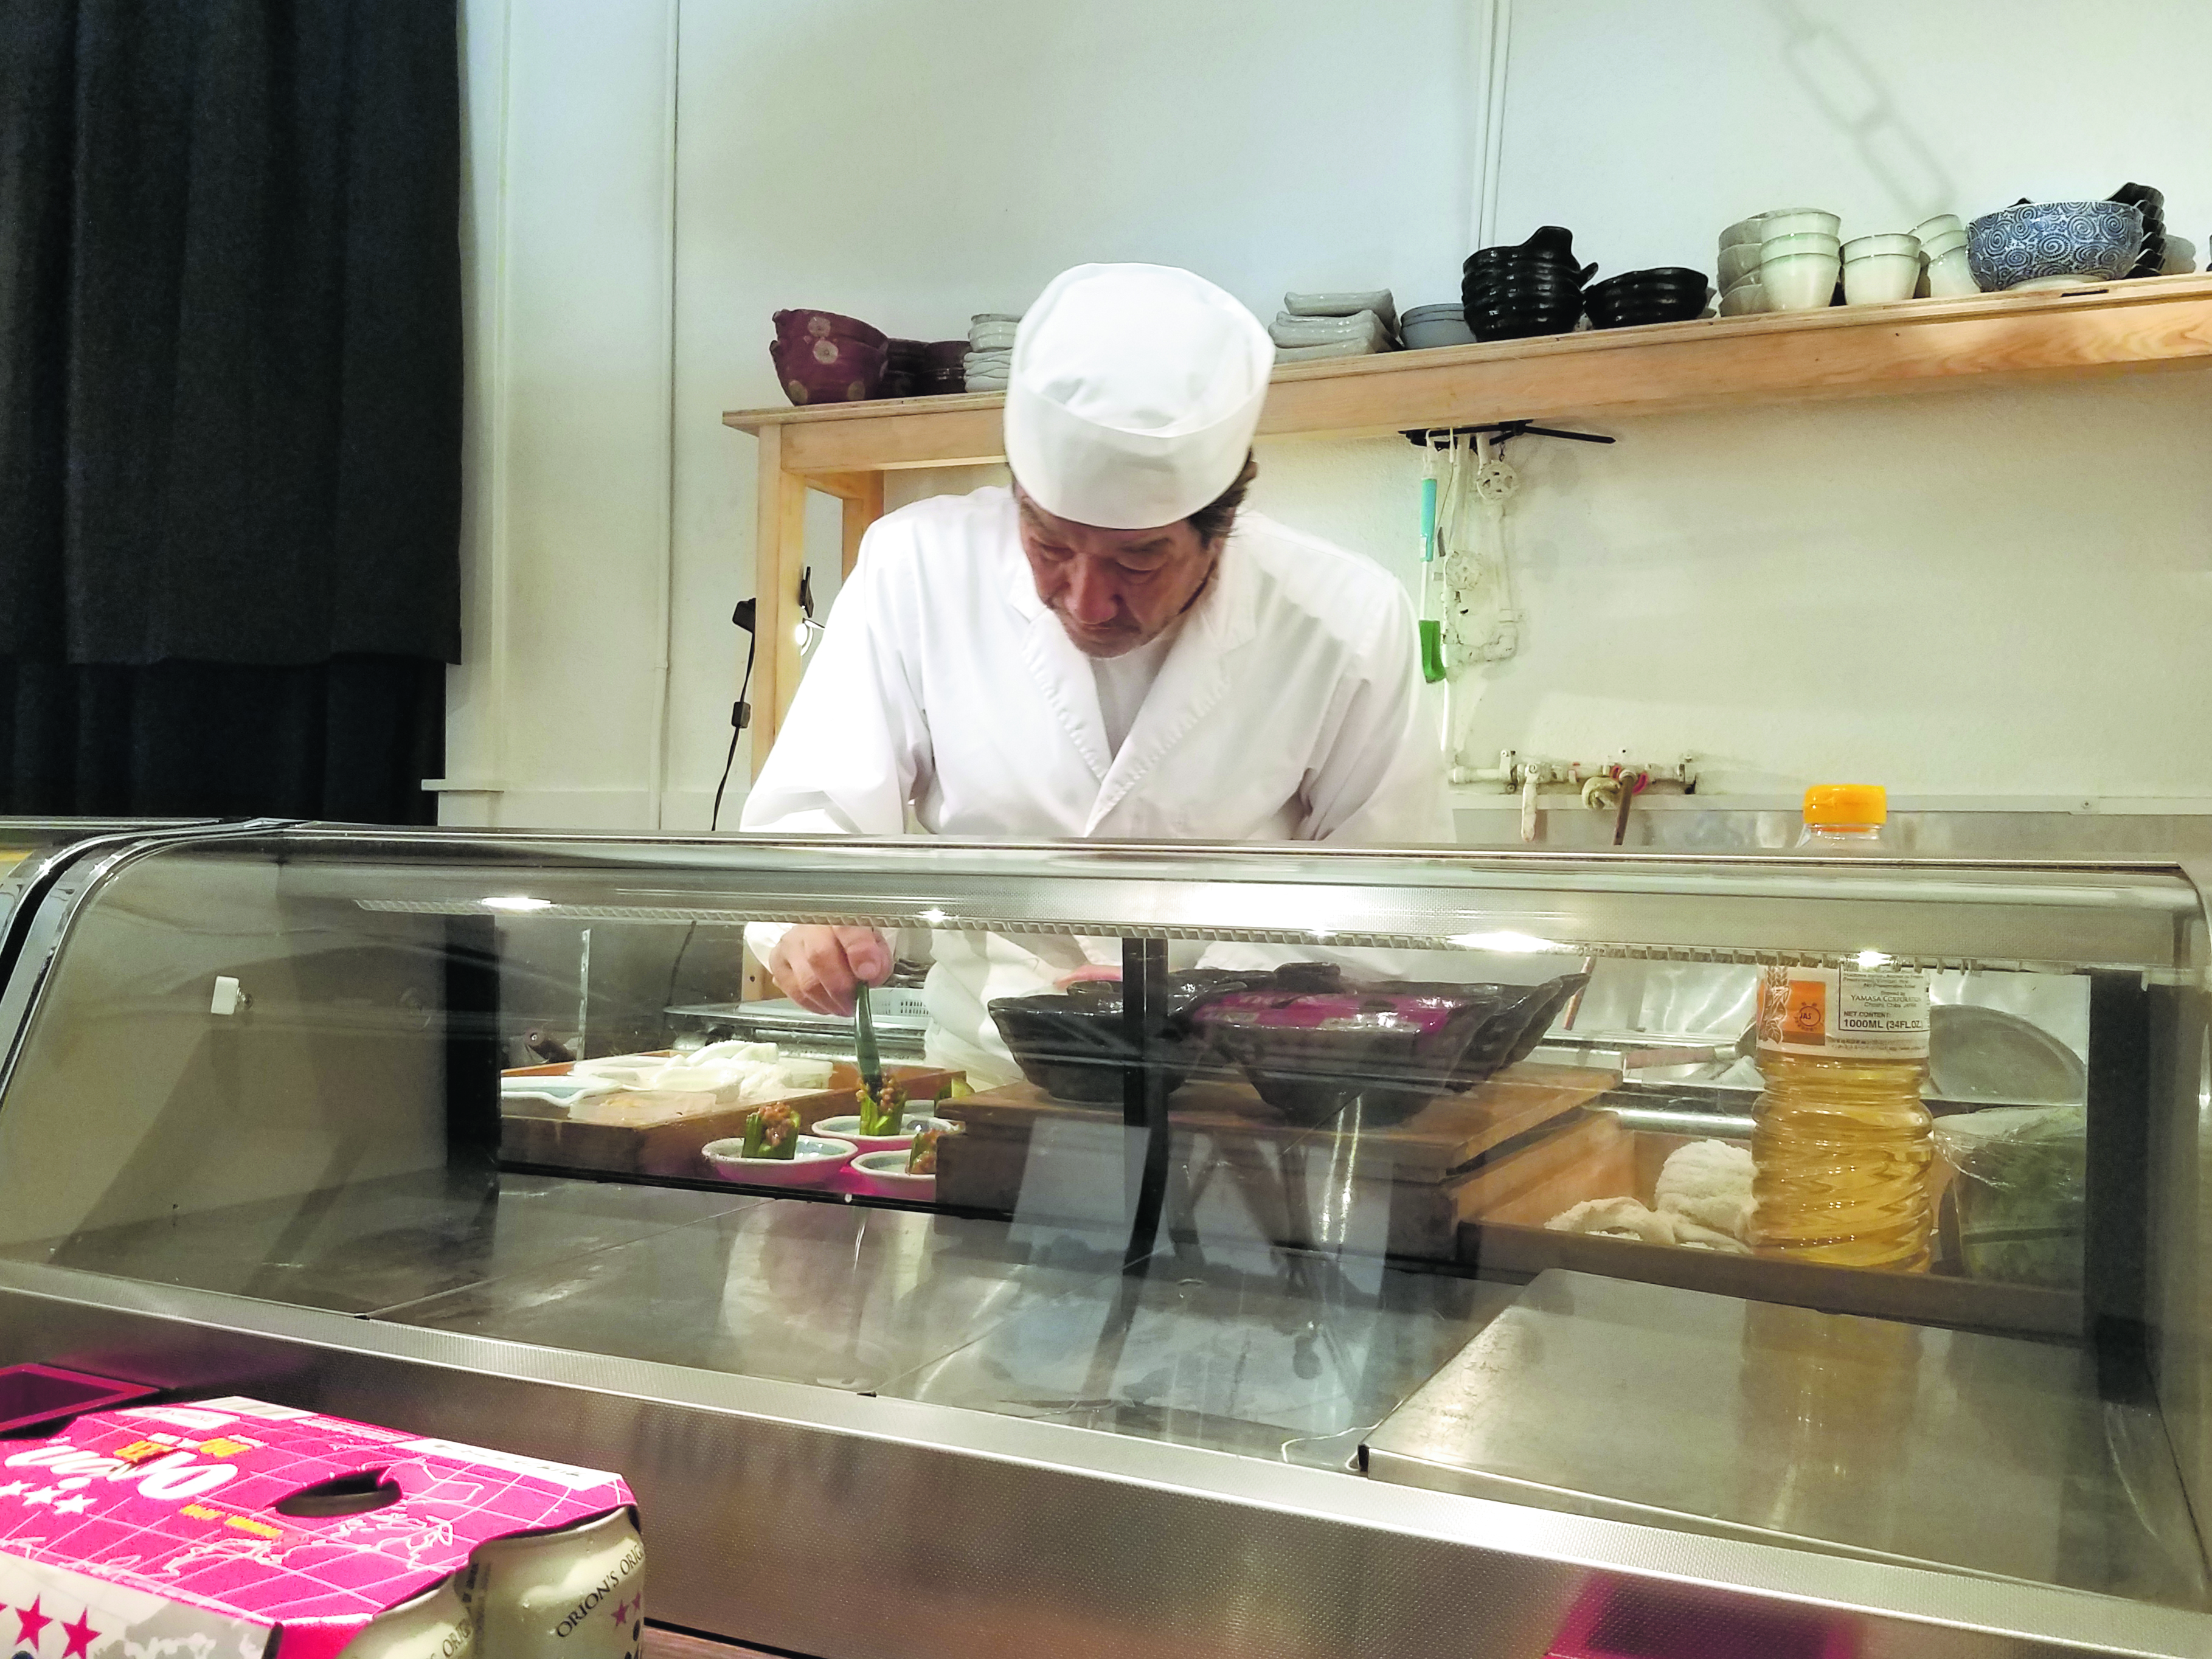 Chef Taka Kijima mindfully preparing dishes for his omakase dinner guests.